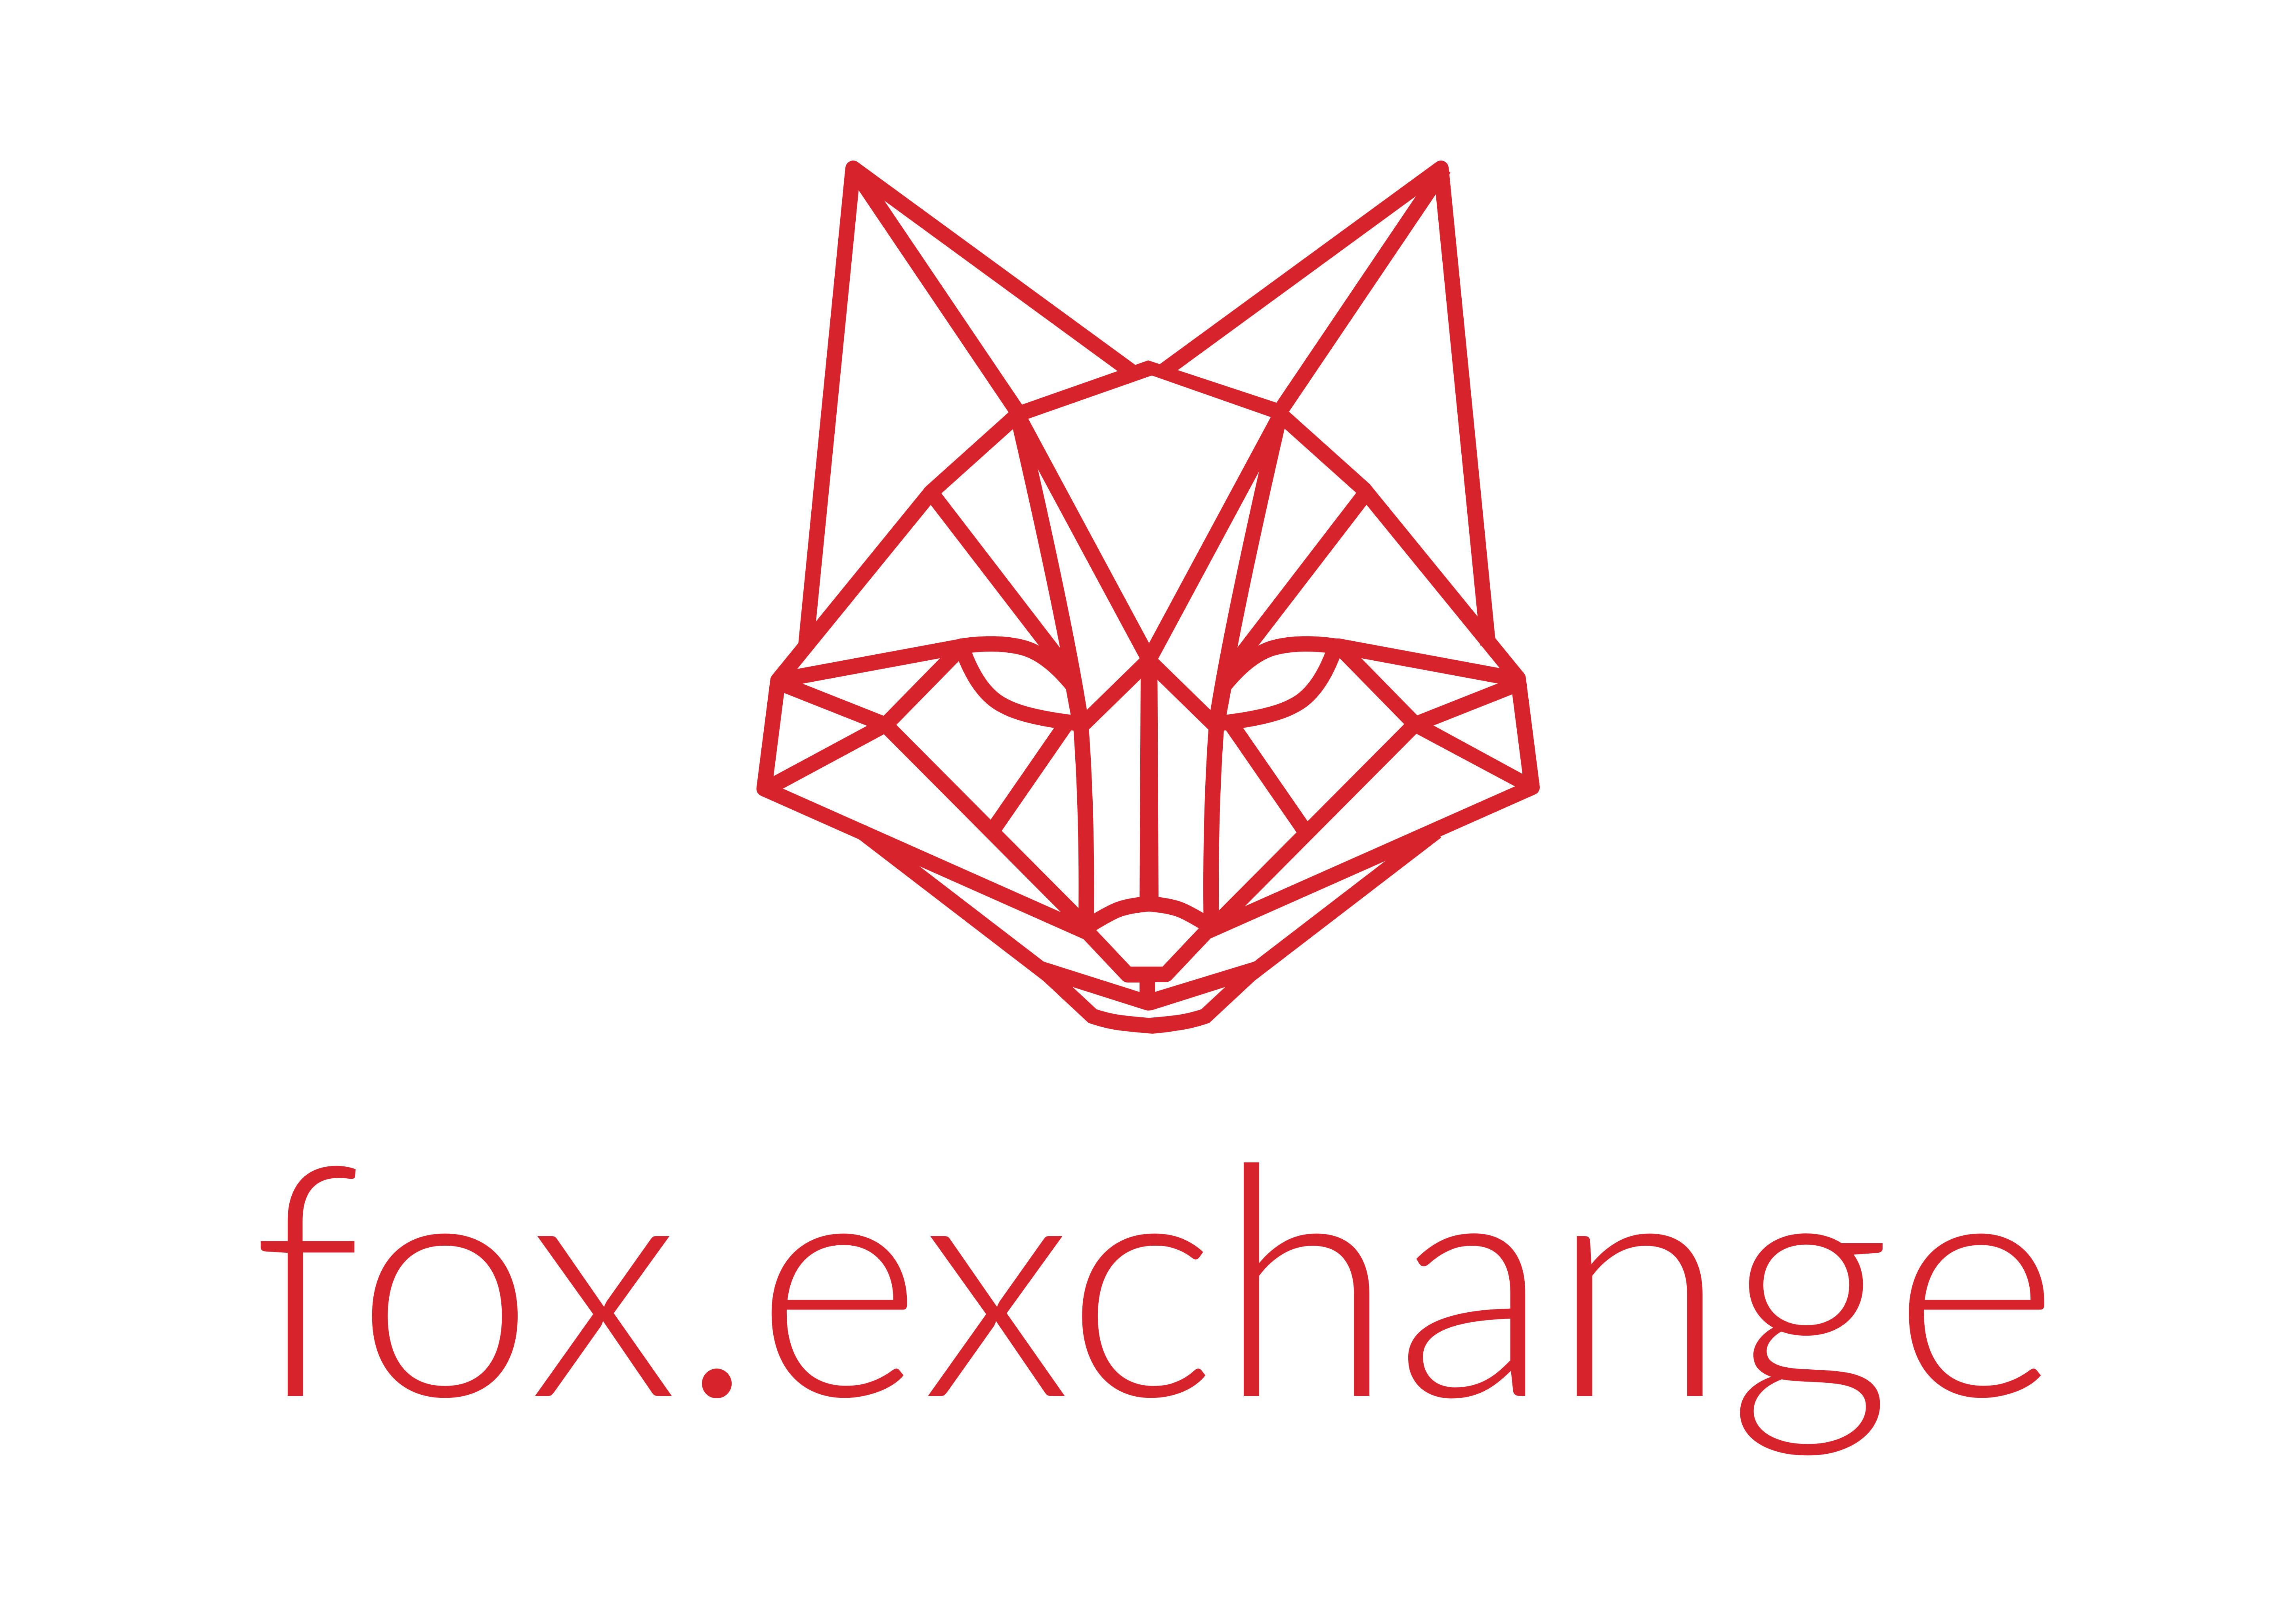 fox.exchangelogo